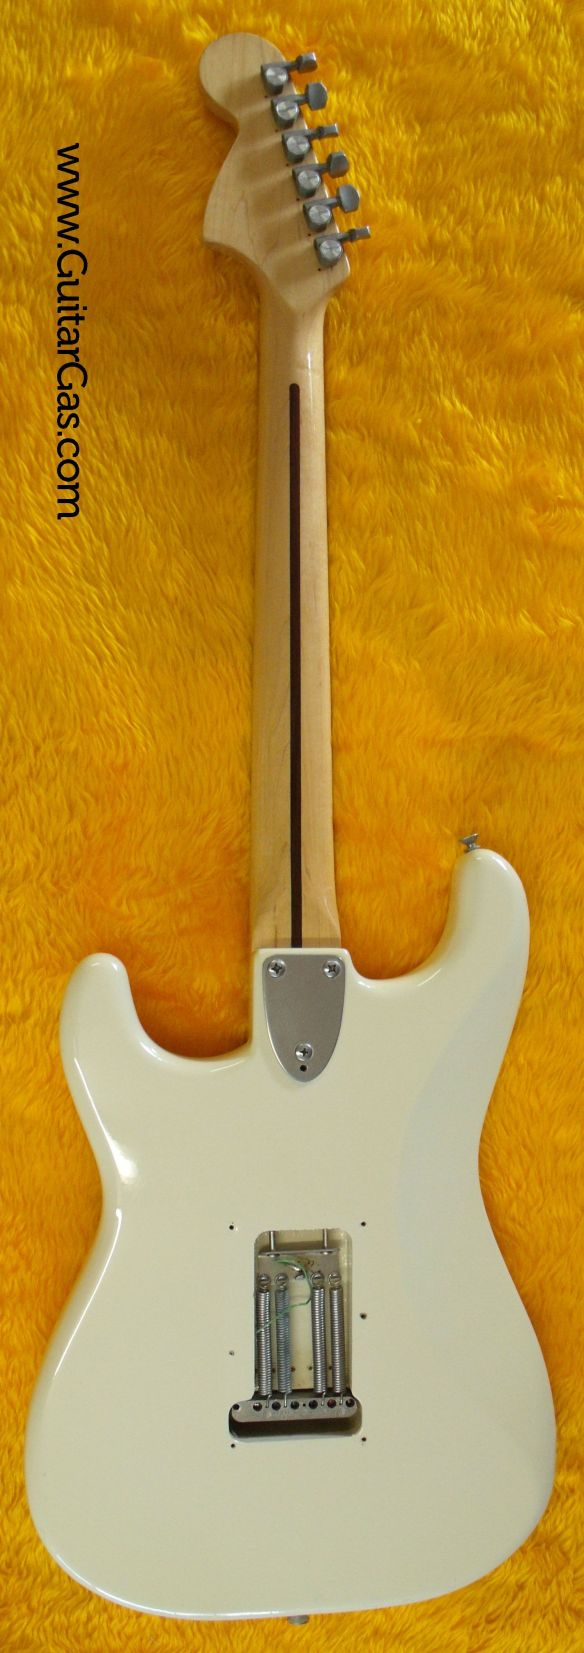 The back of an 80s made in Japan stone logo Fernandes Strat copy.